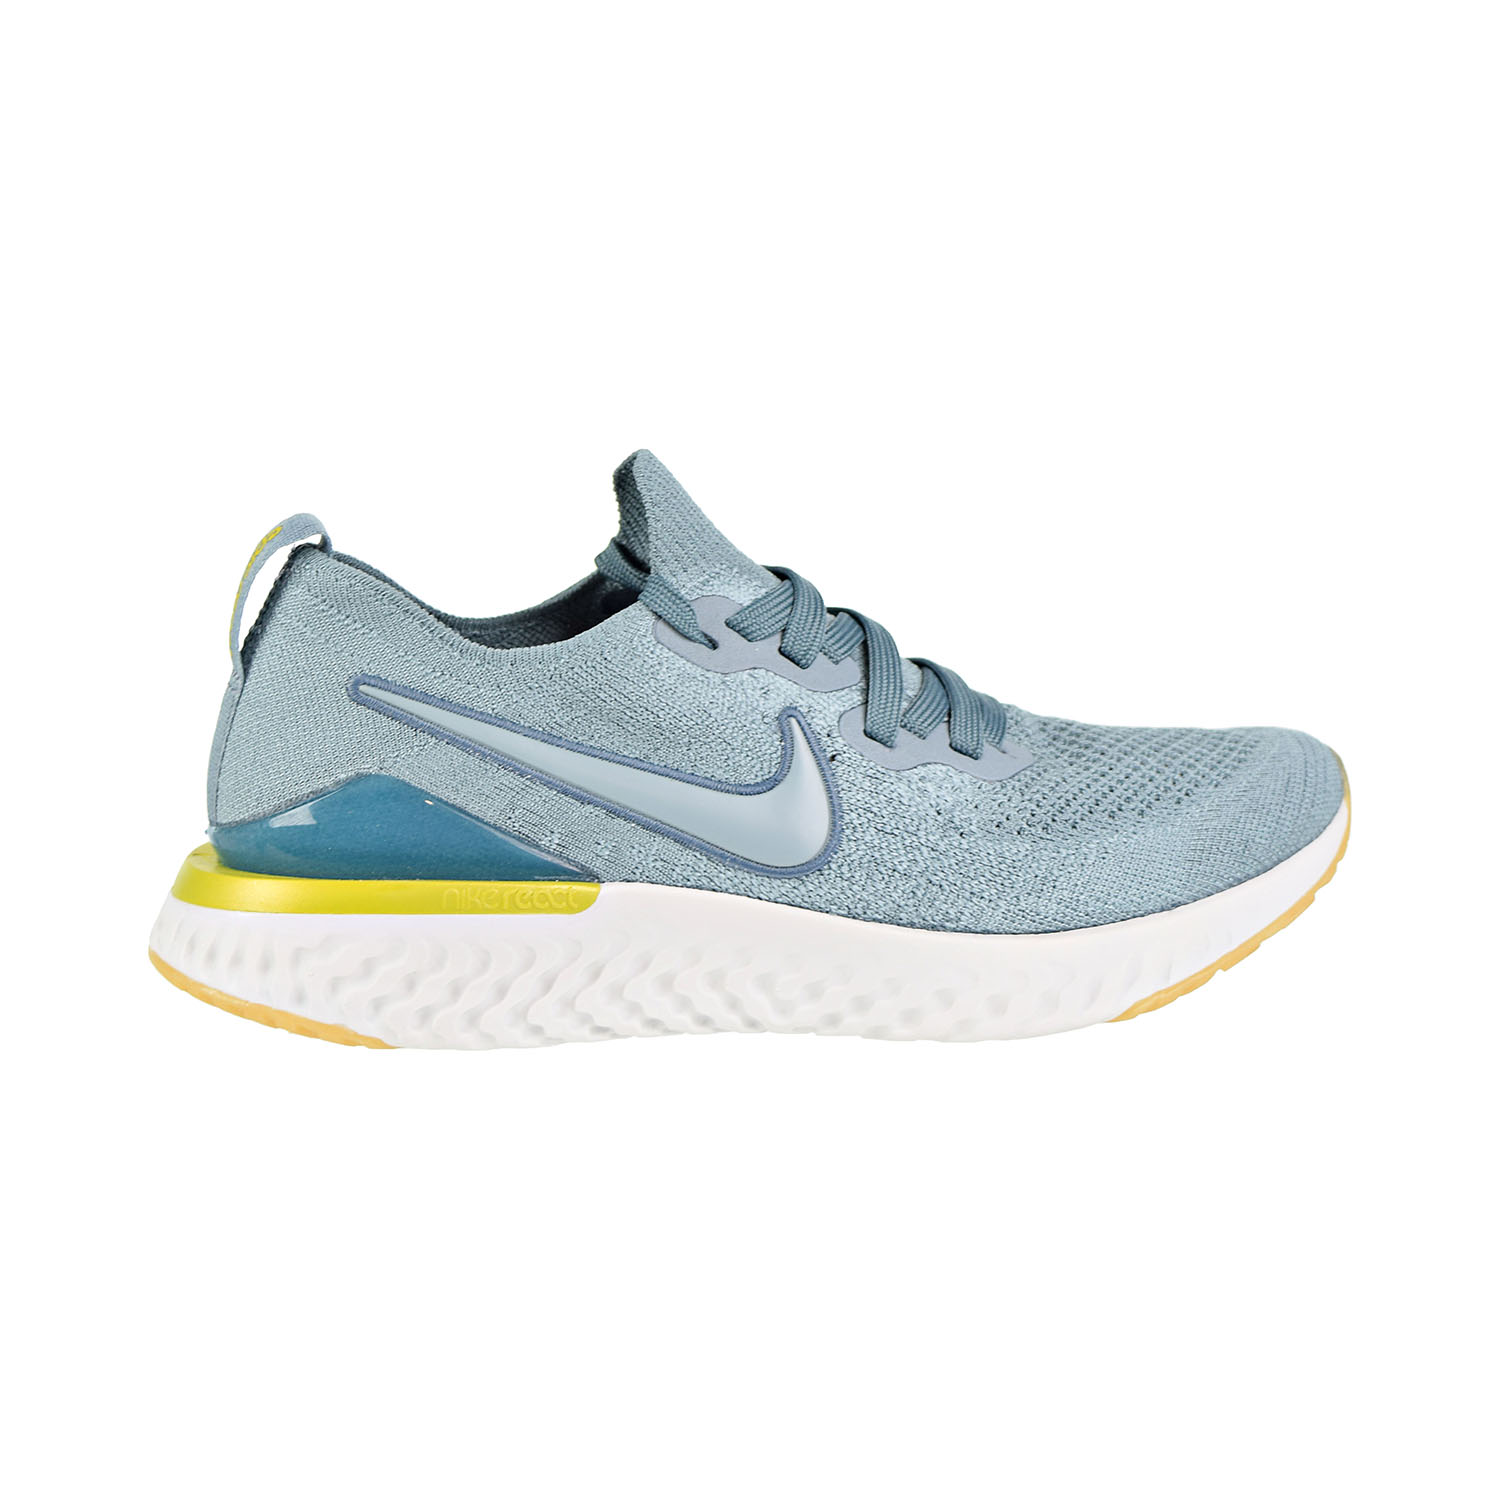 d35913be211e5 Details about Nike Epic React Flyknit 2 (GS) Big Kids  Running Shoes  Aviator Grey AQ3243-005